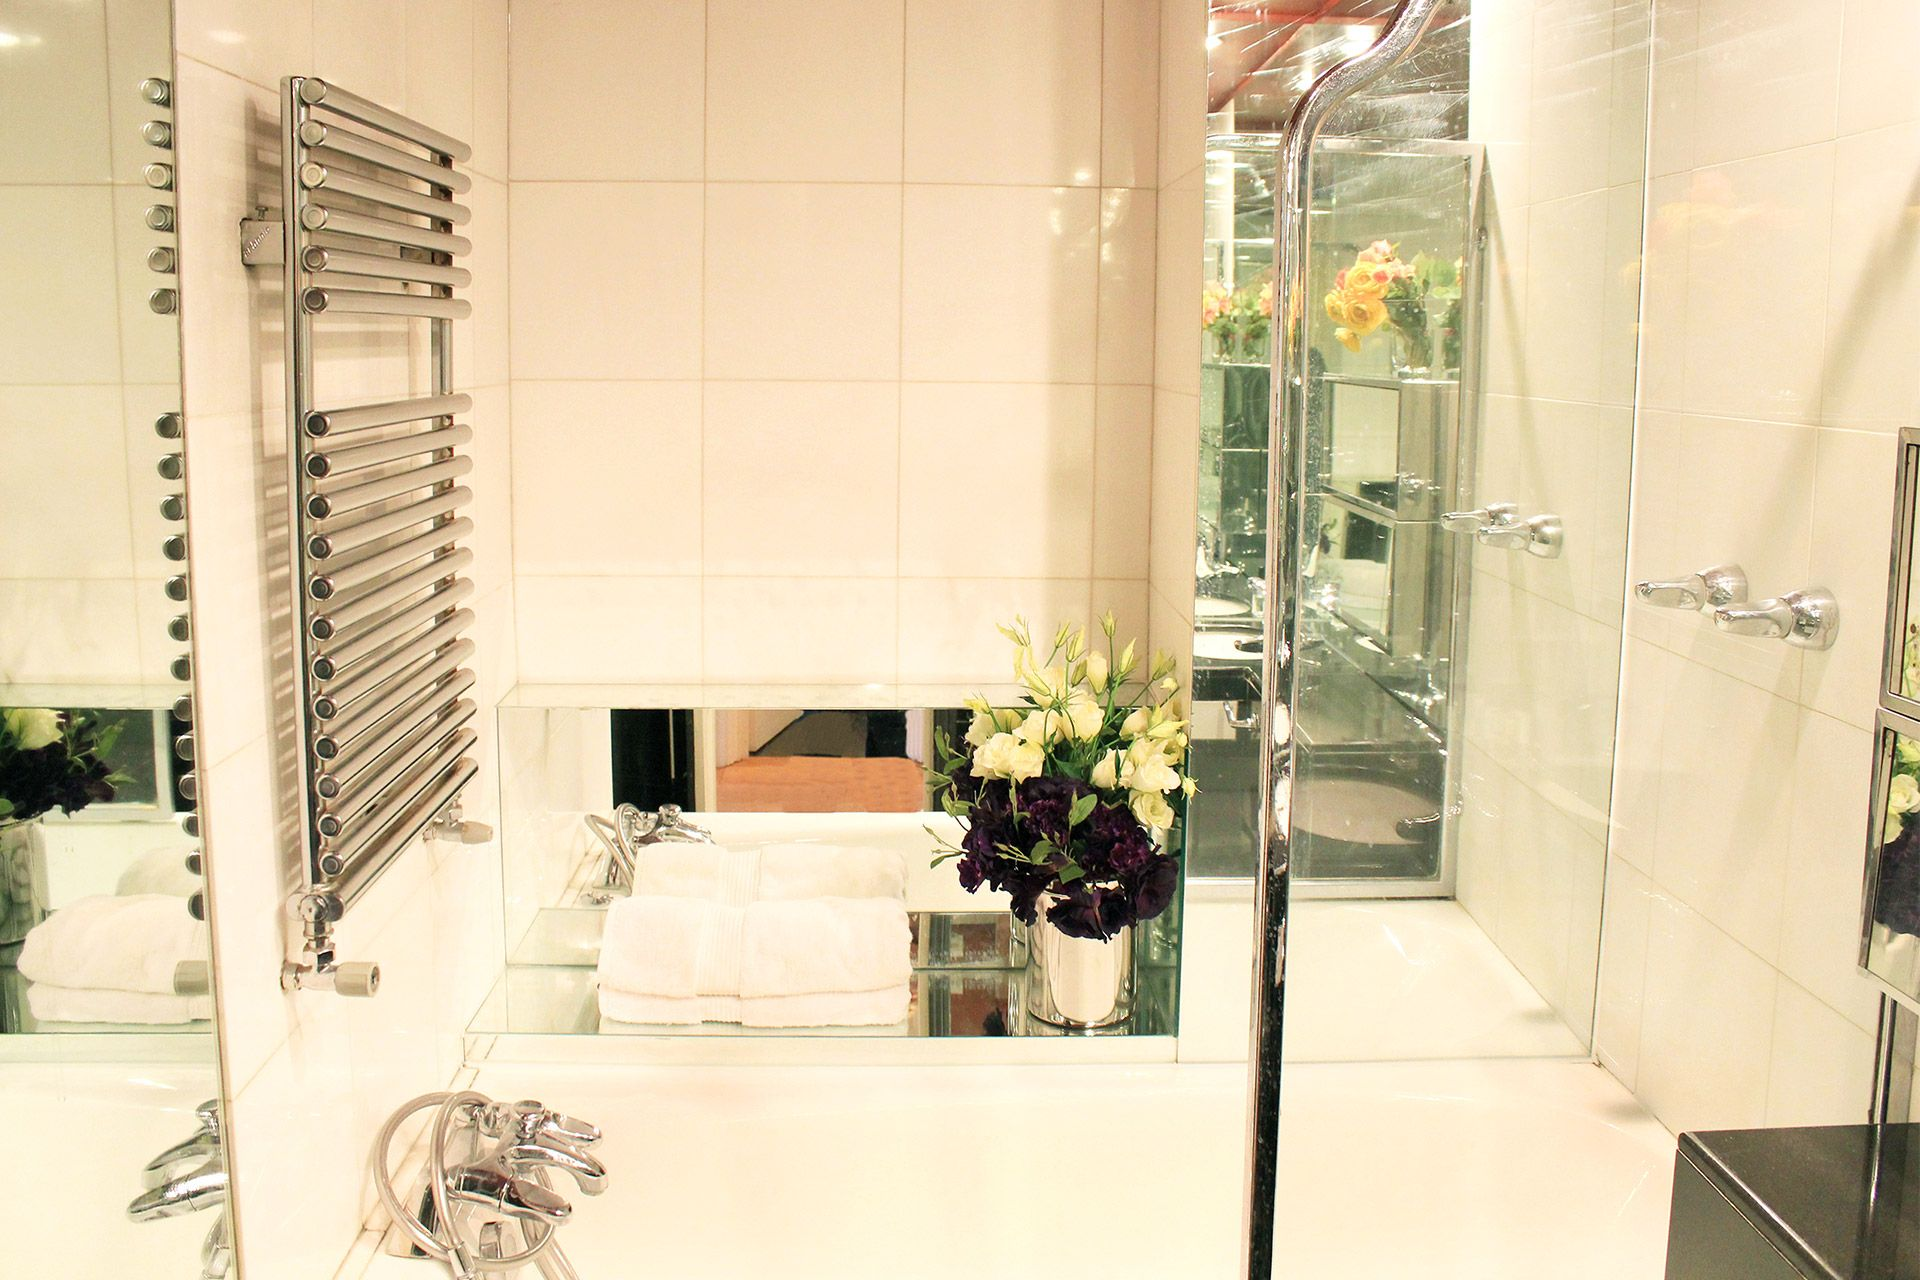 Heated towel rail in bathroom for warm towels